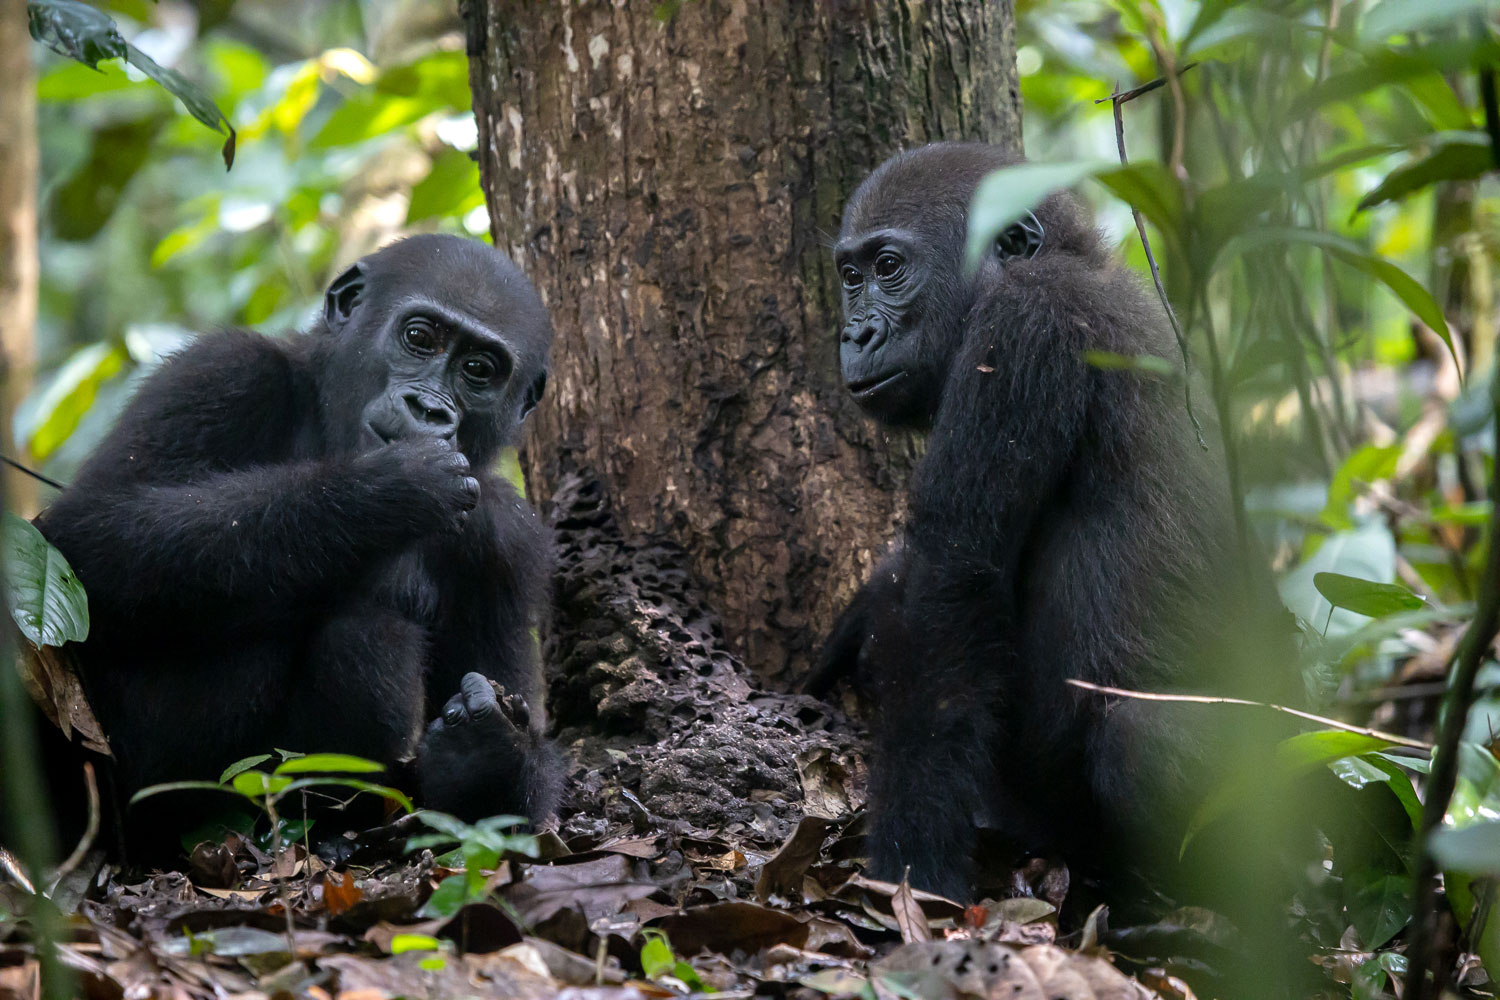 Gorillas in Dzanga-Sangha Protected Areas